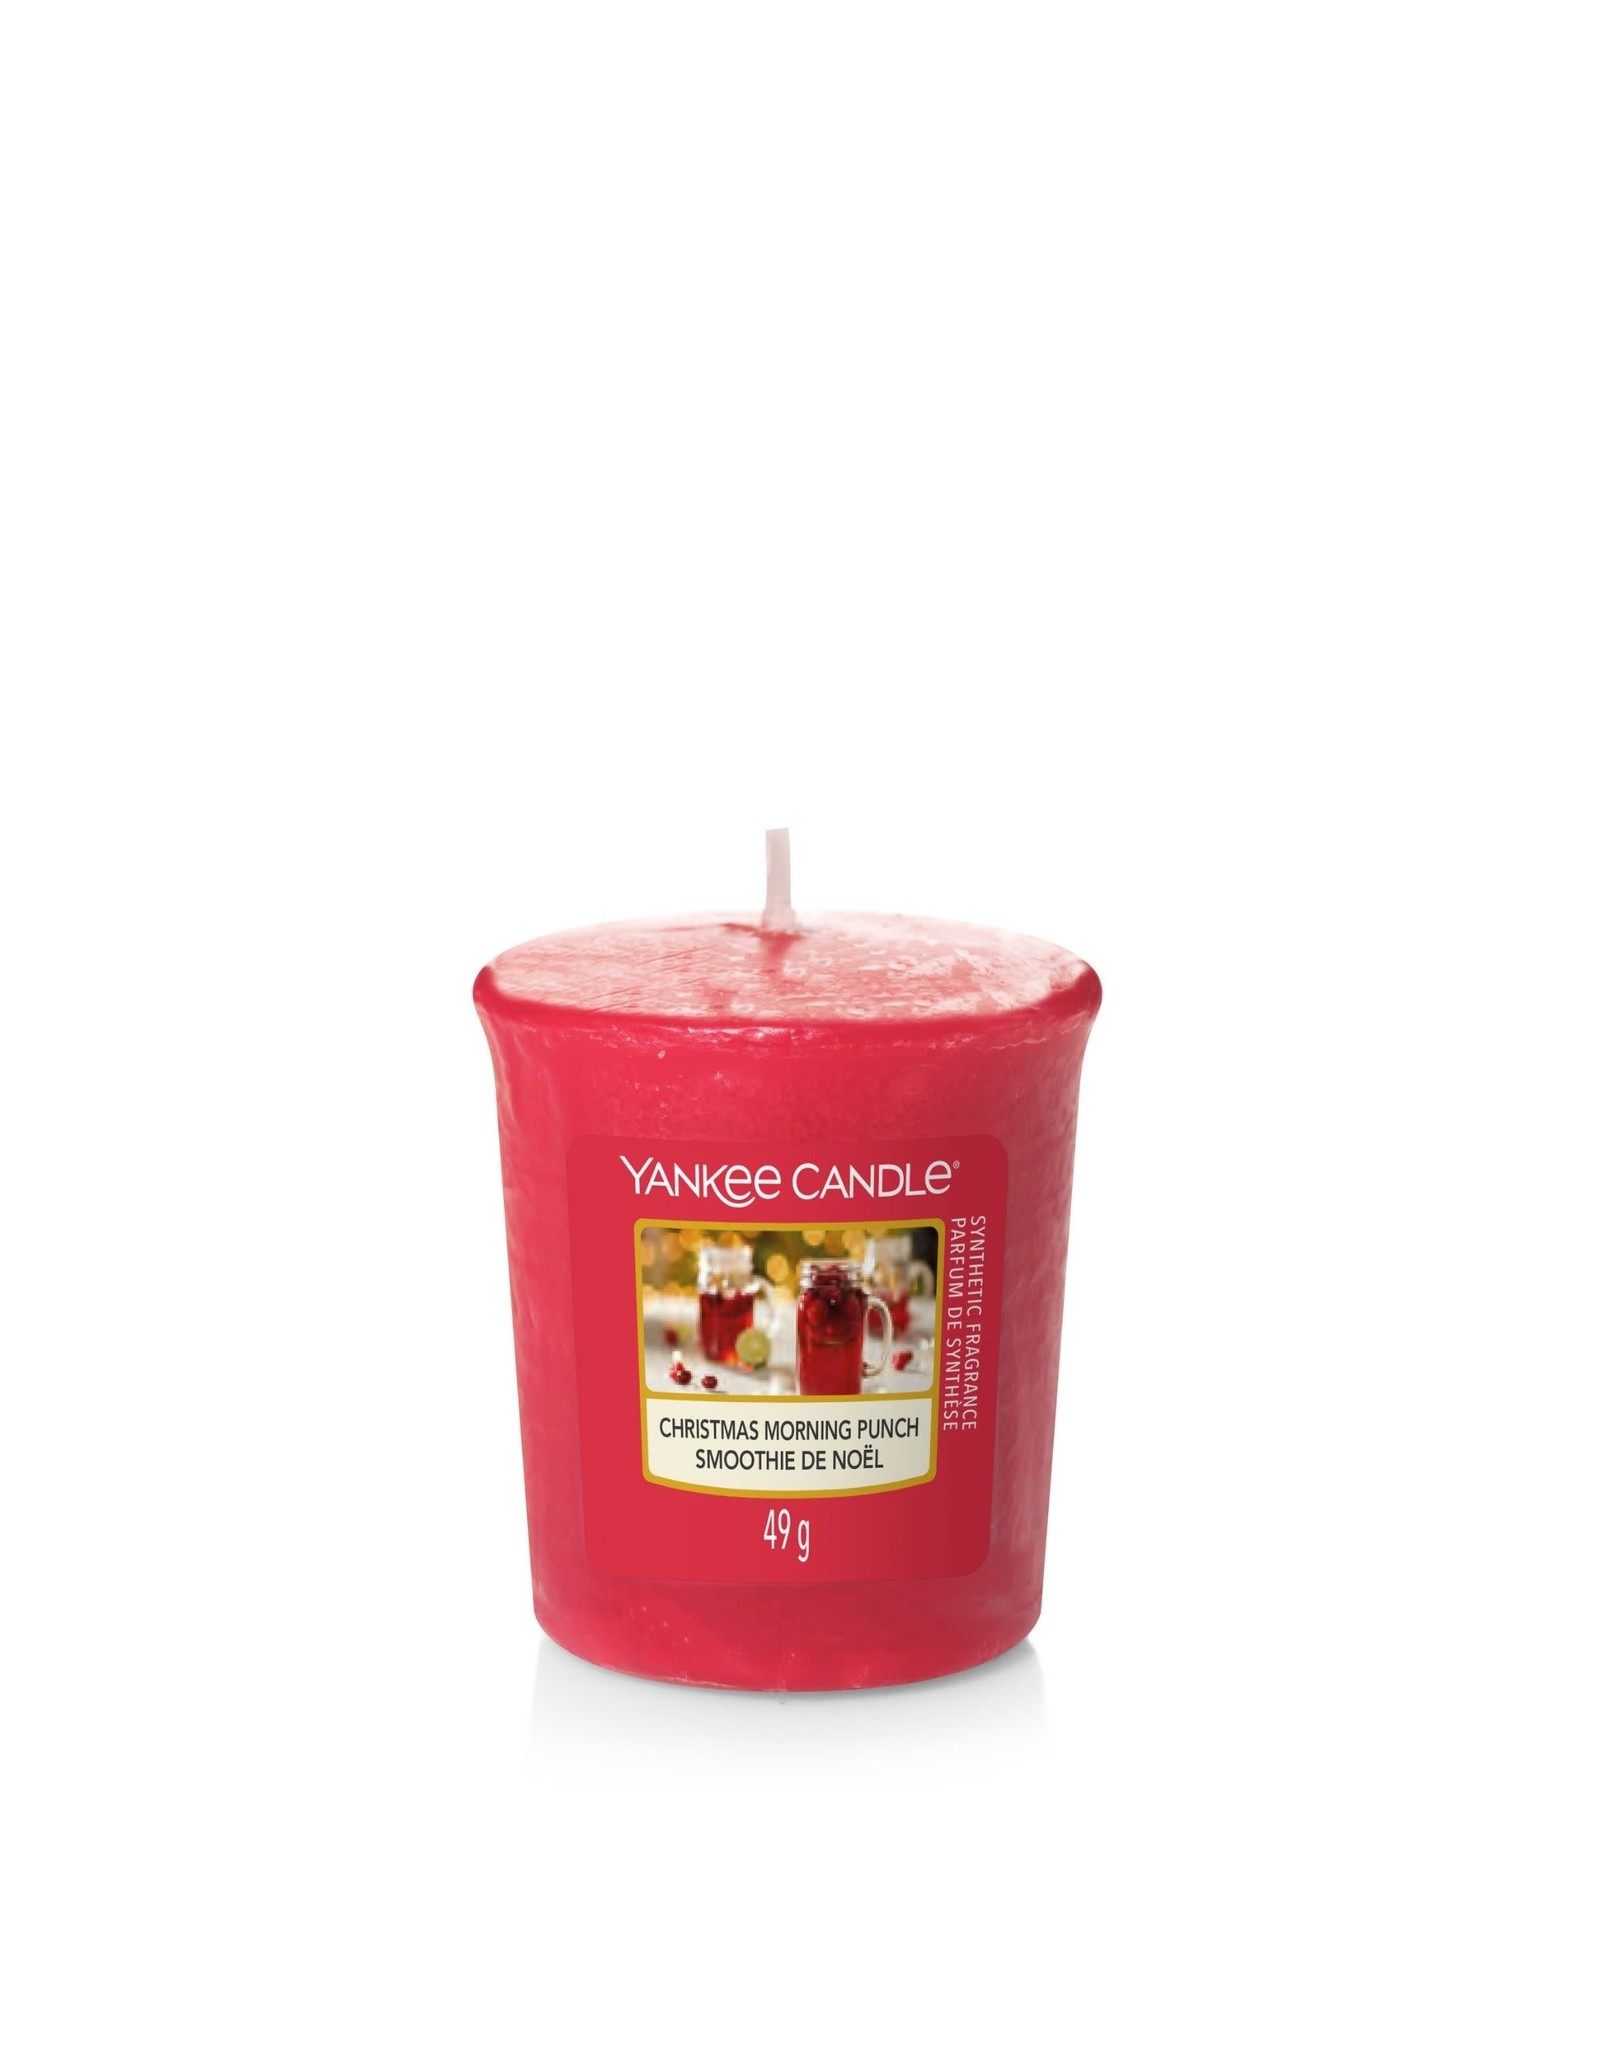 Yankee Candle Christmas Morning Punch - Votive